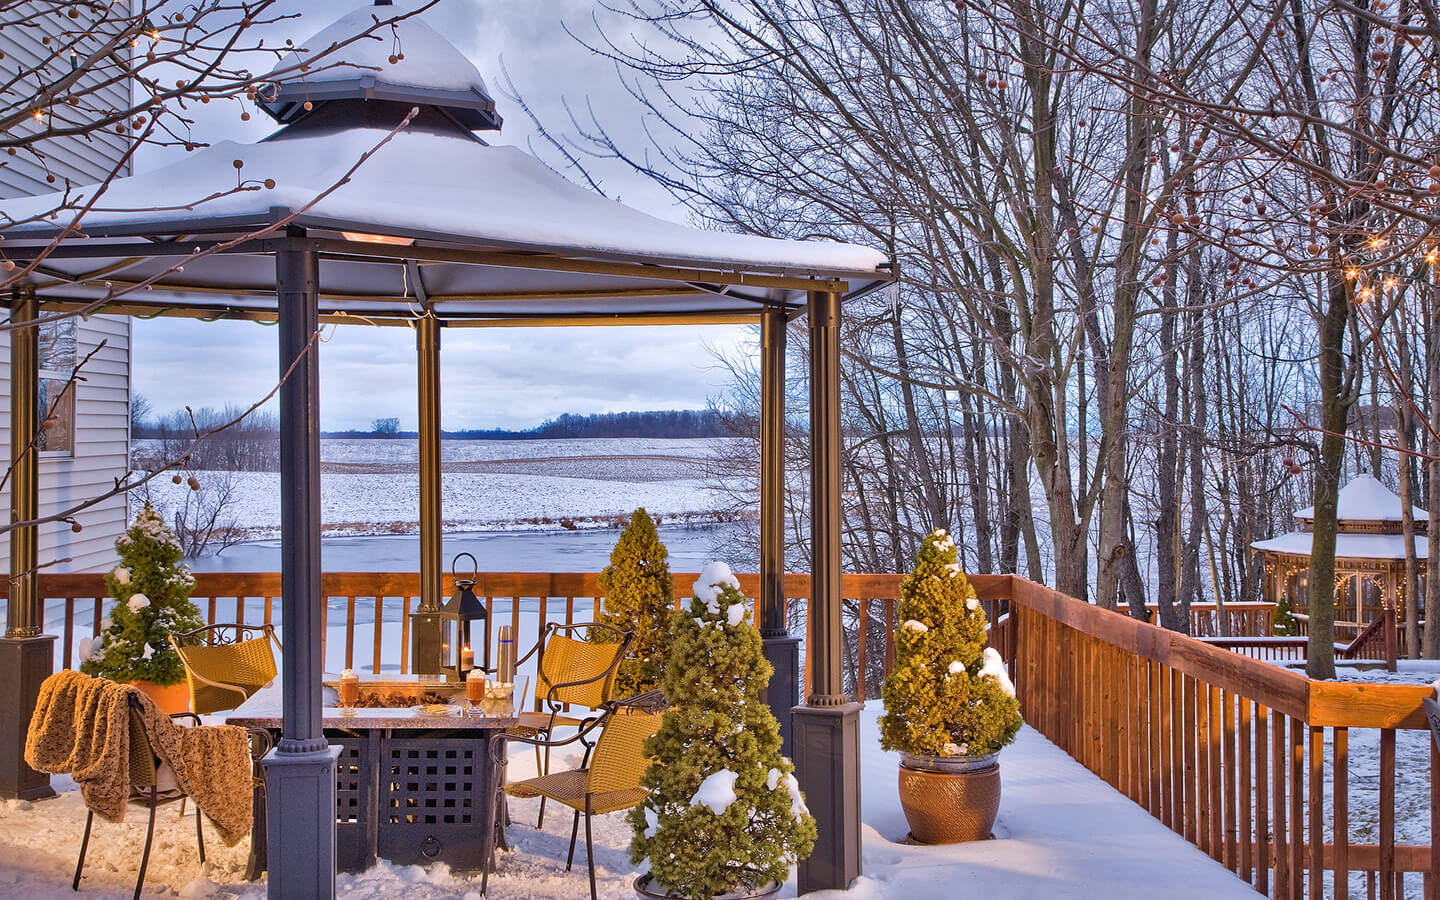 Romantic getaways in Michigan on the snowy deck with gazebo